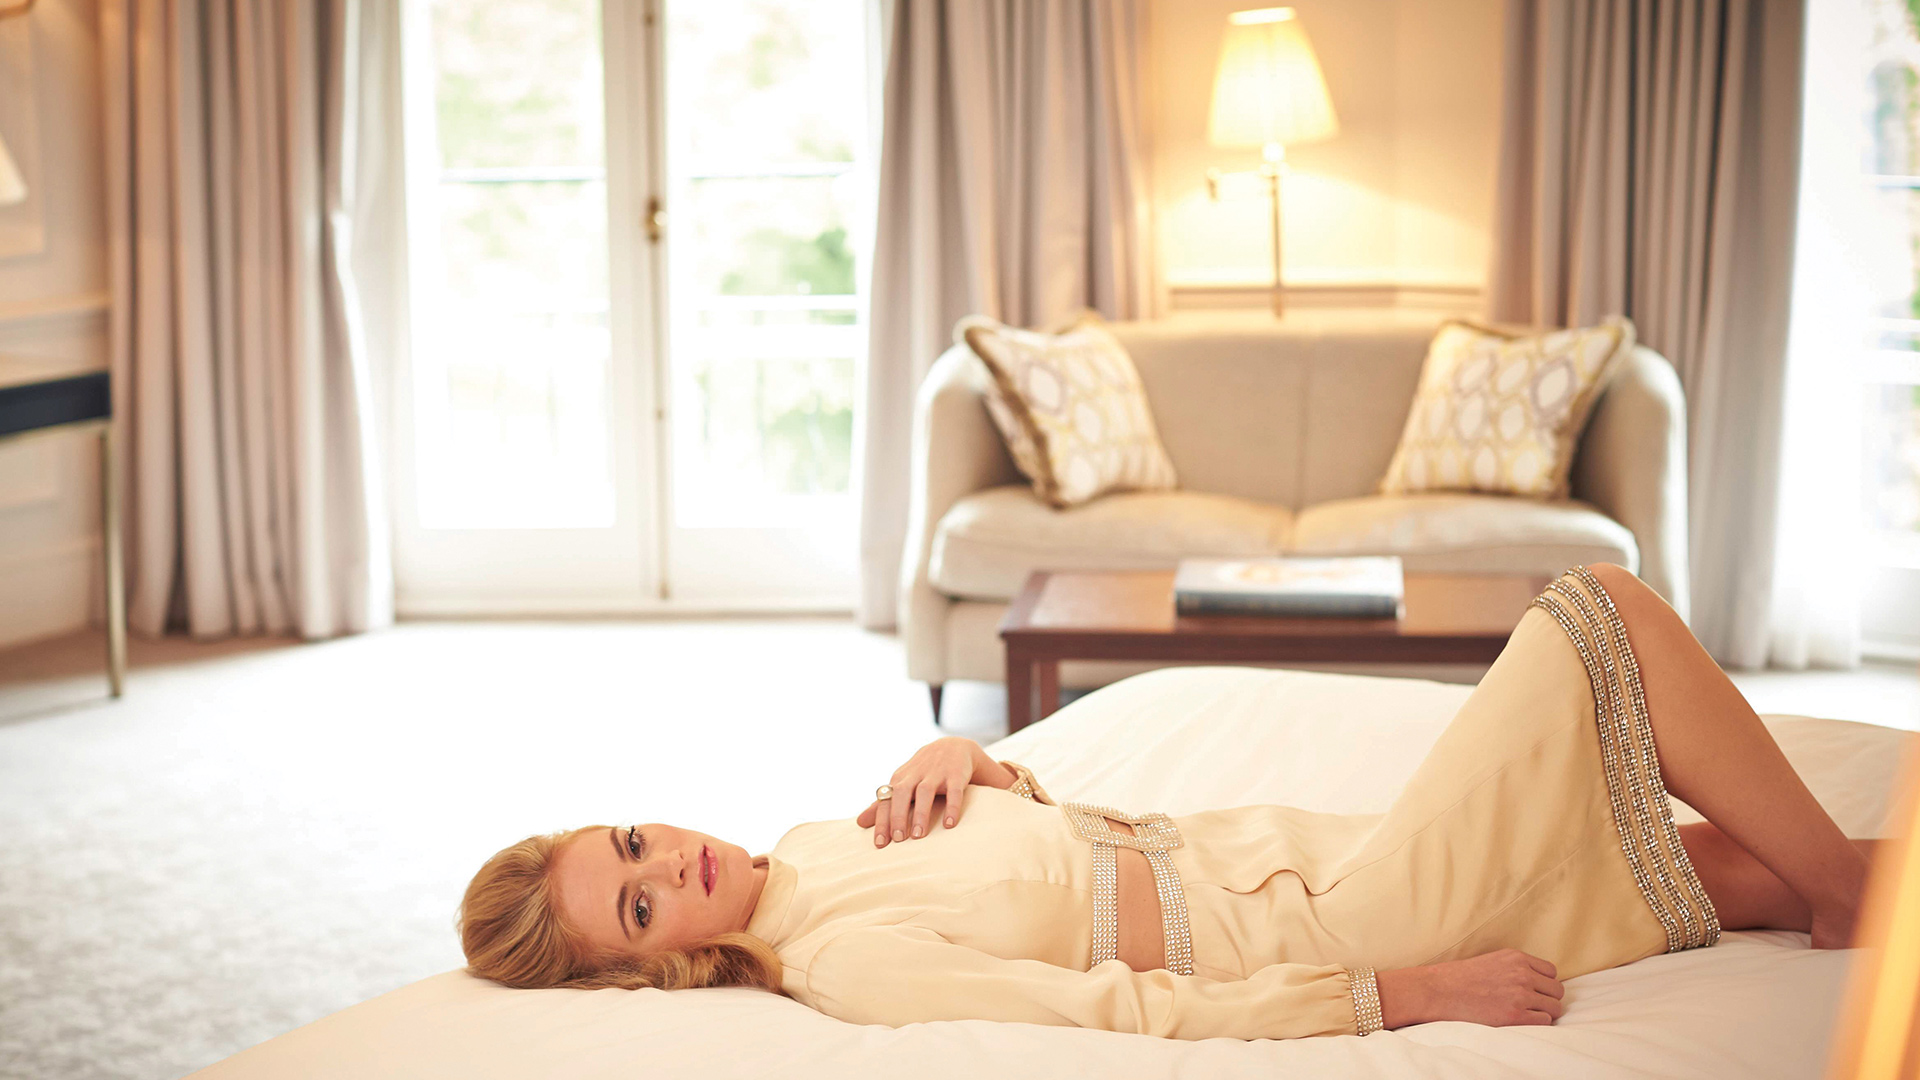 Emily Wickersham knows how to relax